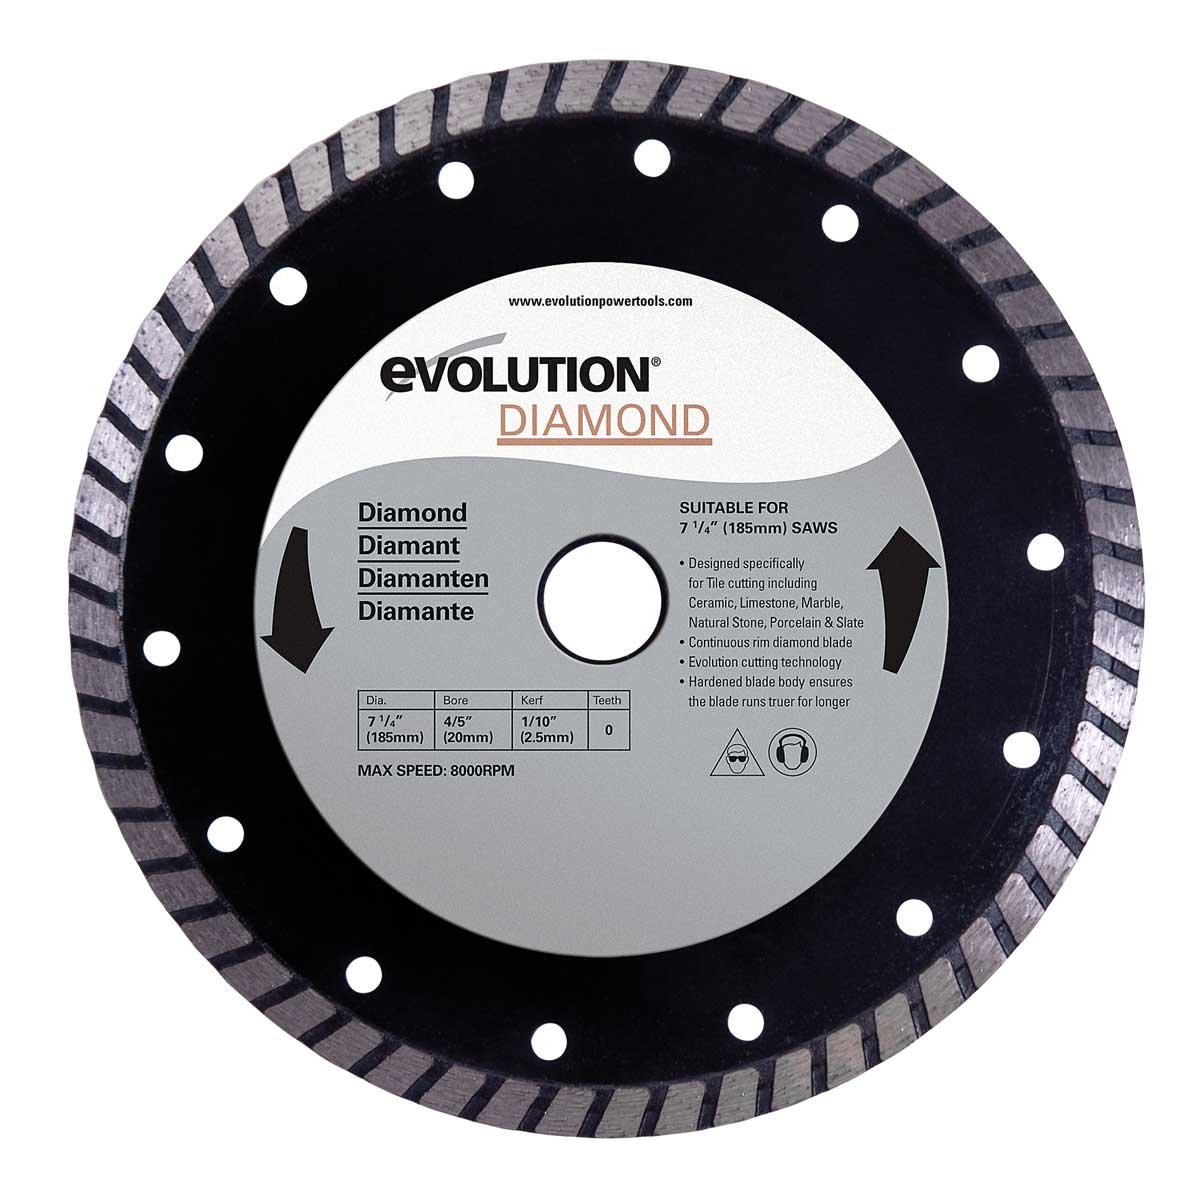 Evolution power tools 12bladedm 12 inch diamond blade amazon greentooth Image collections